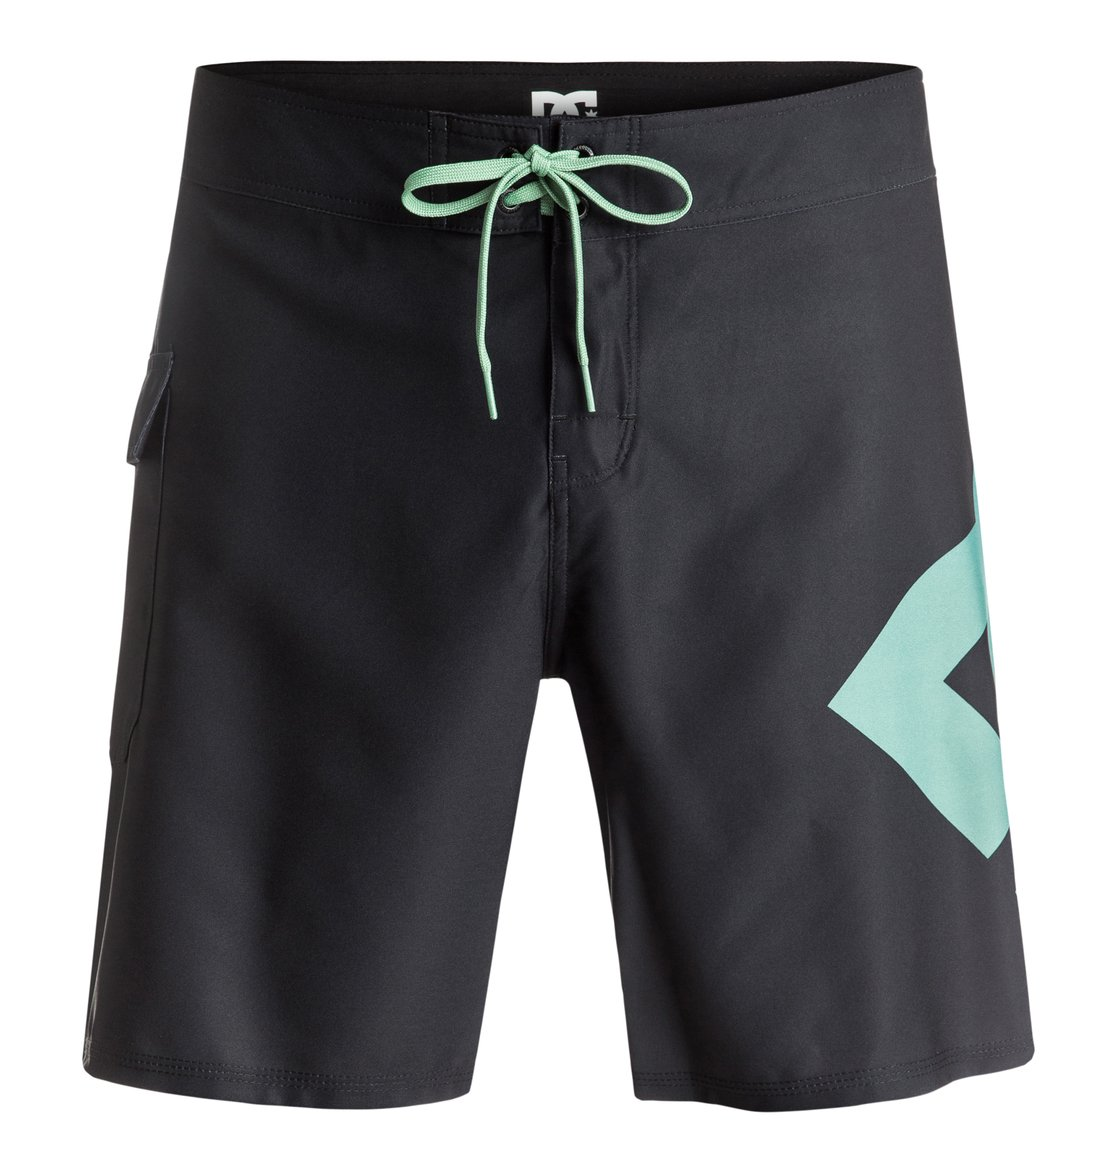 Boardshorty Dc Lanai 18 (Black/Malachite Green)